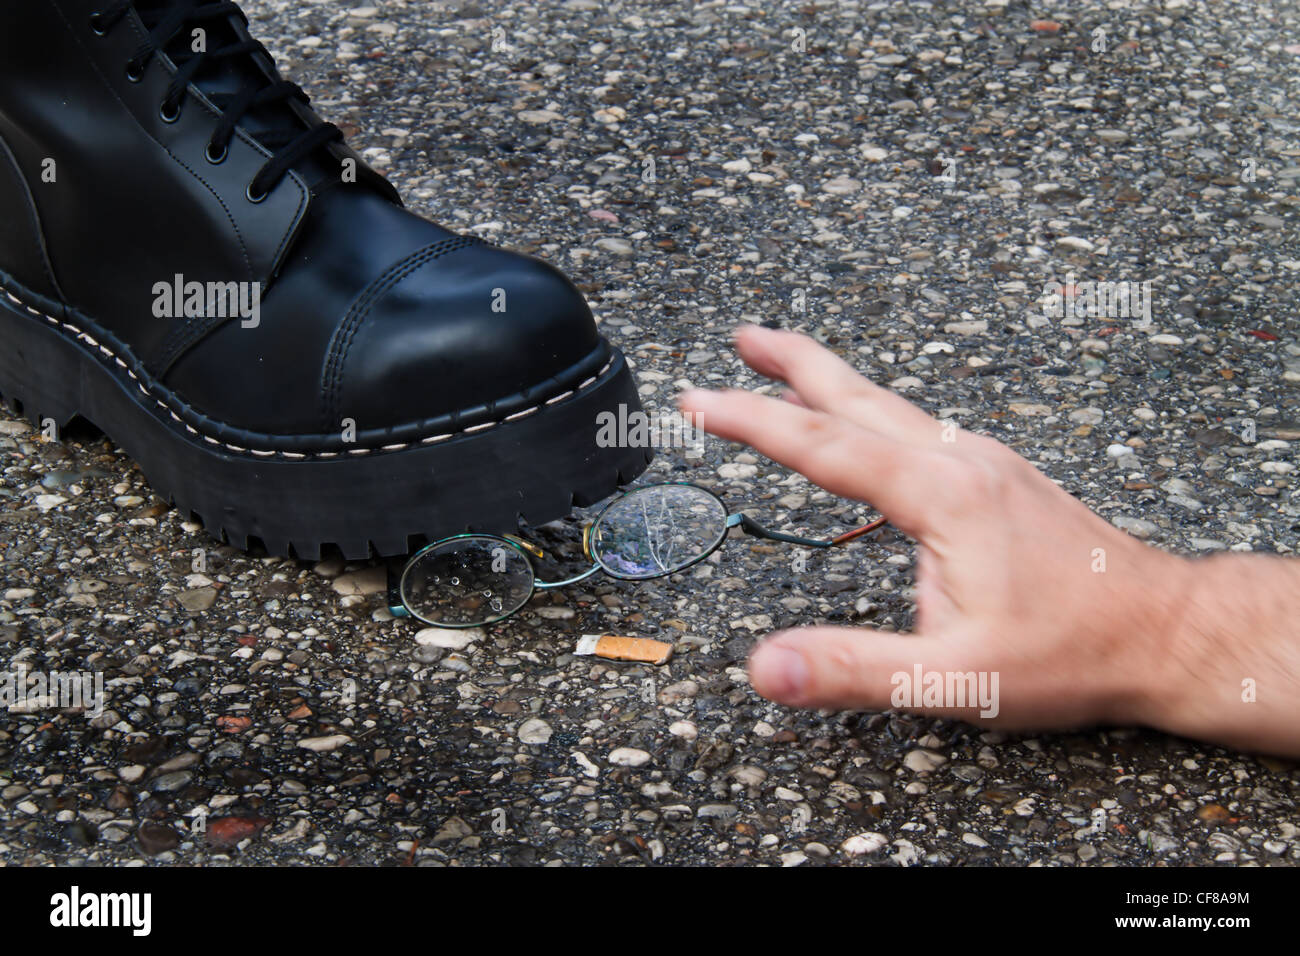 Symbol for nazis skinheads and right wing stock photo 43824304 alamy symbol for nazis skinheads and right wing biocorpaavc Gallery